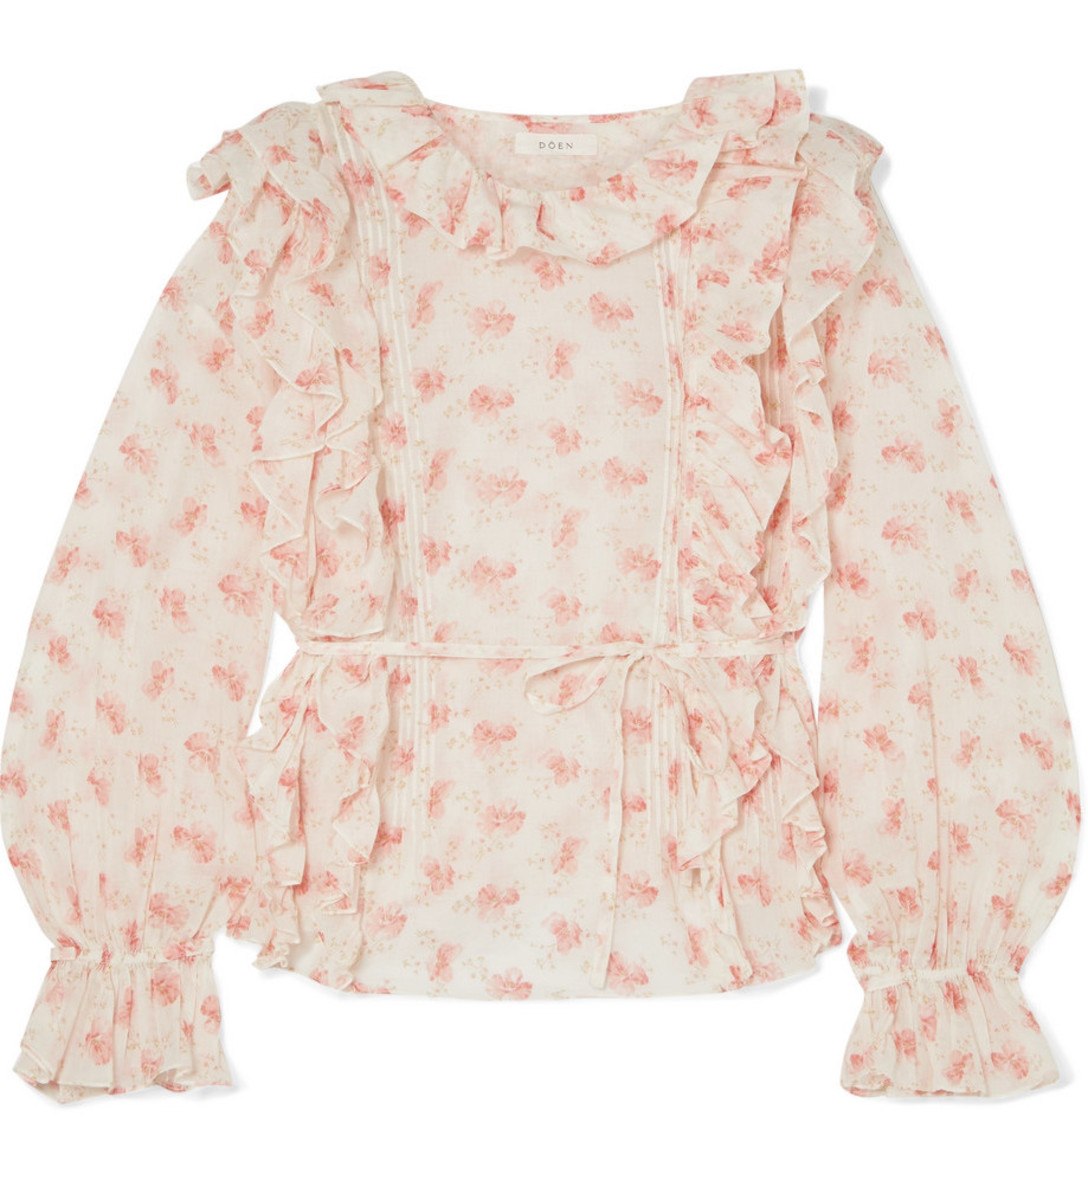 Doên Luca Ruffled Floral-Print Cotton-Voile Blouse, $168, availble here.